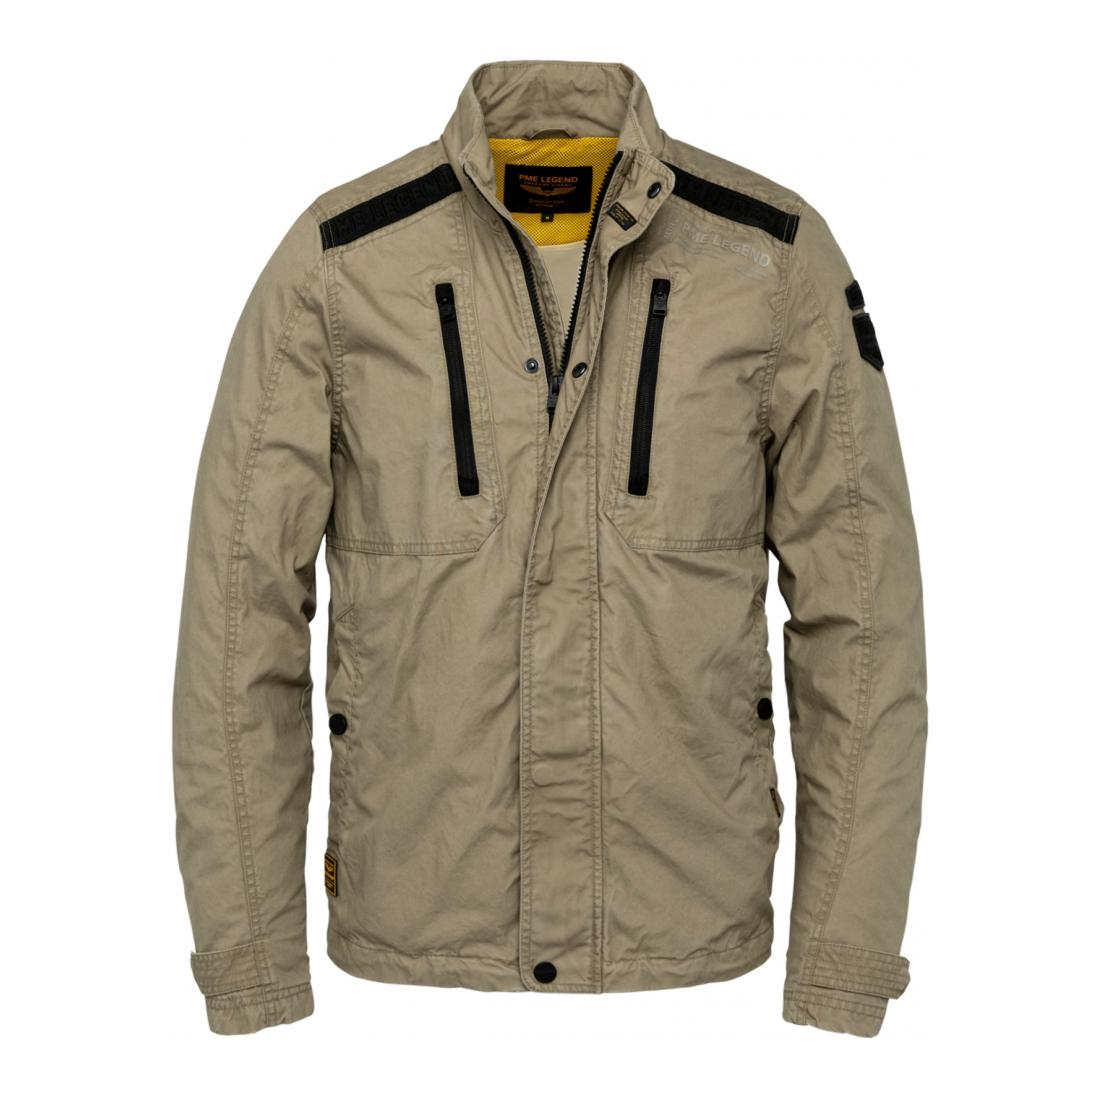 PME Legend Jacke kurz Herren Zip jacket Airpack Mini C